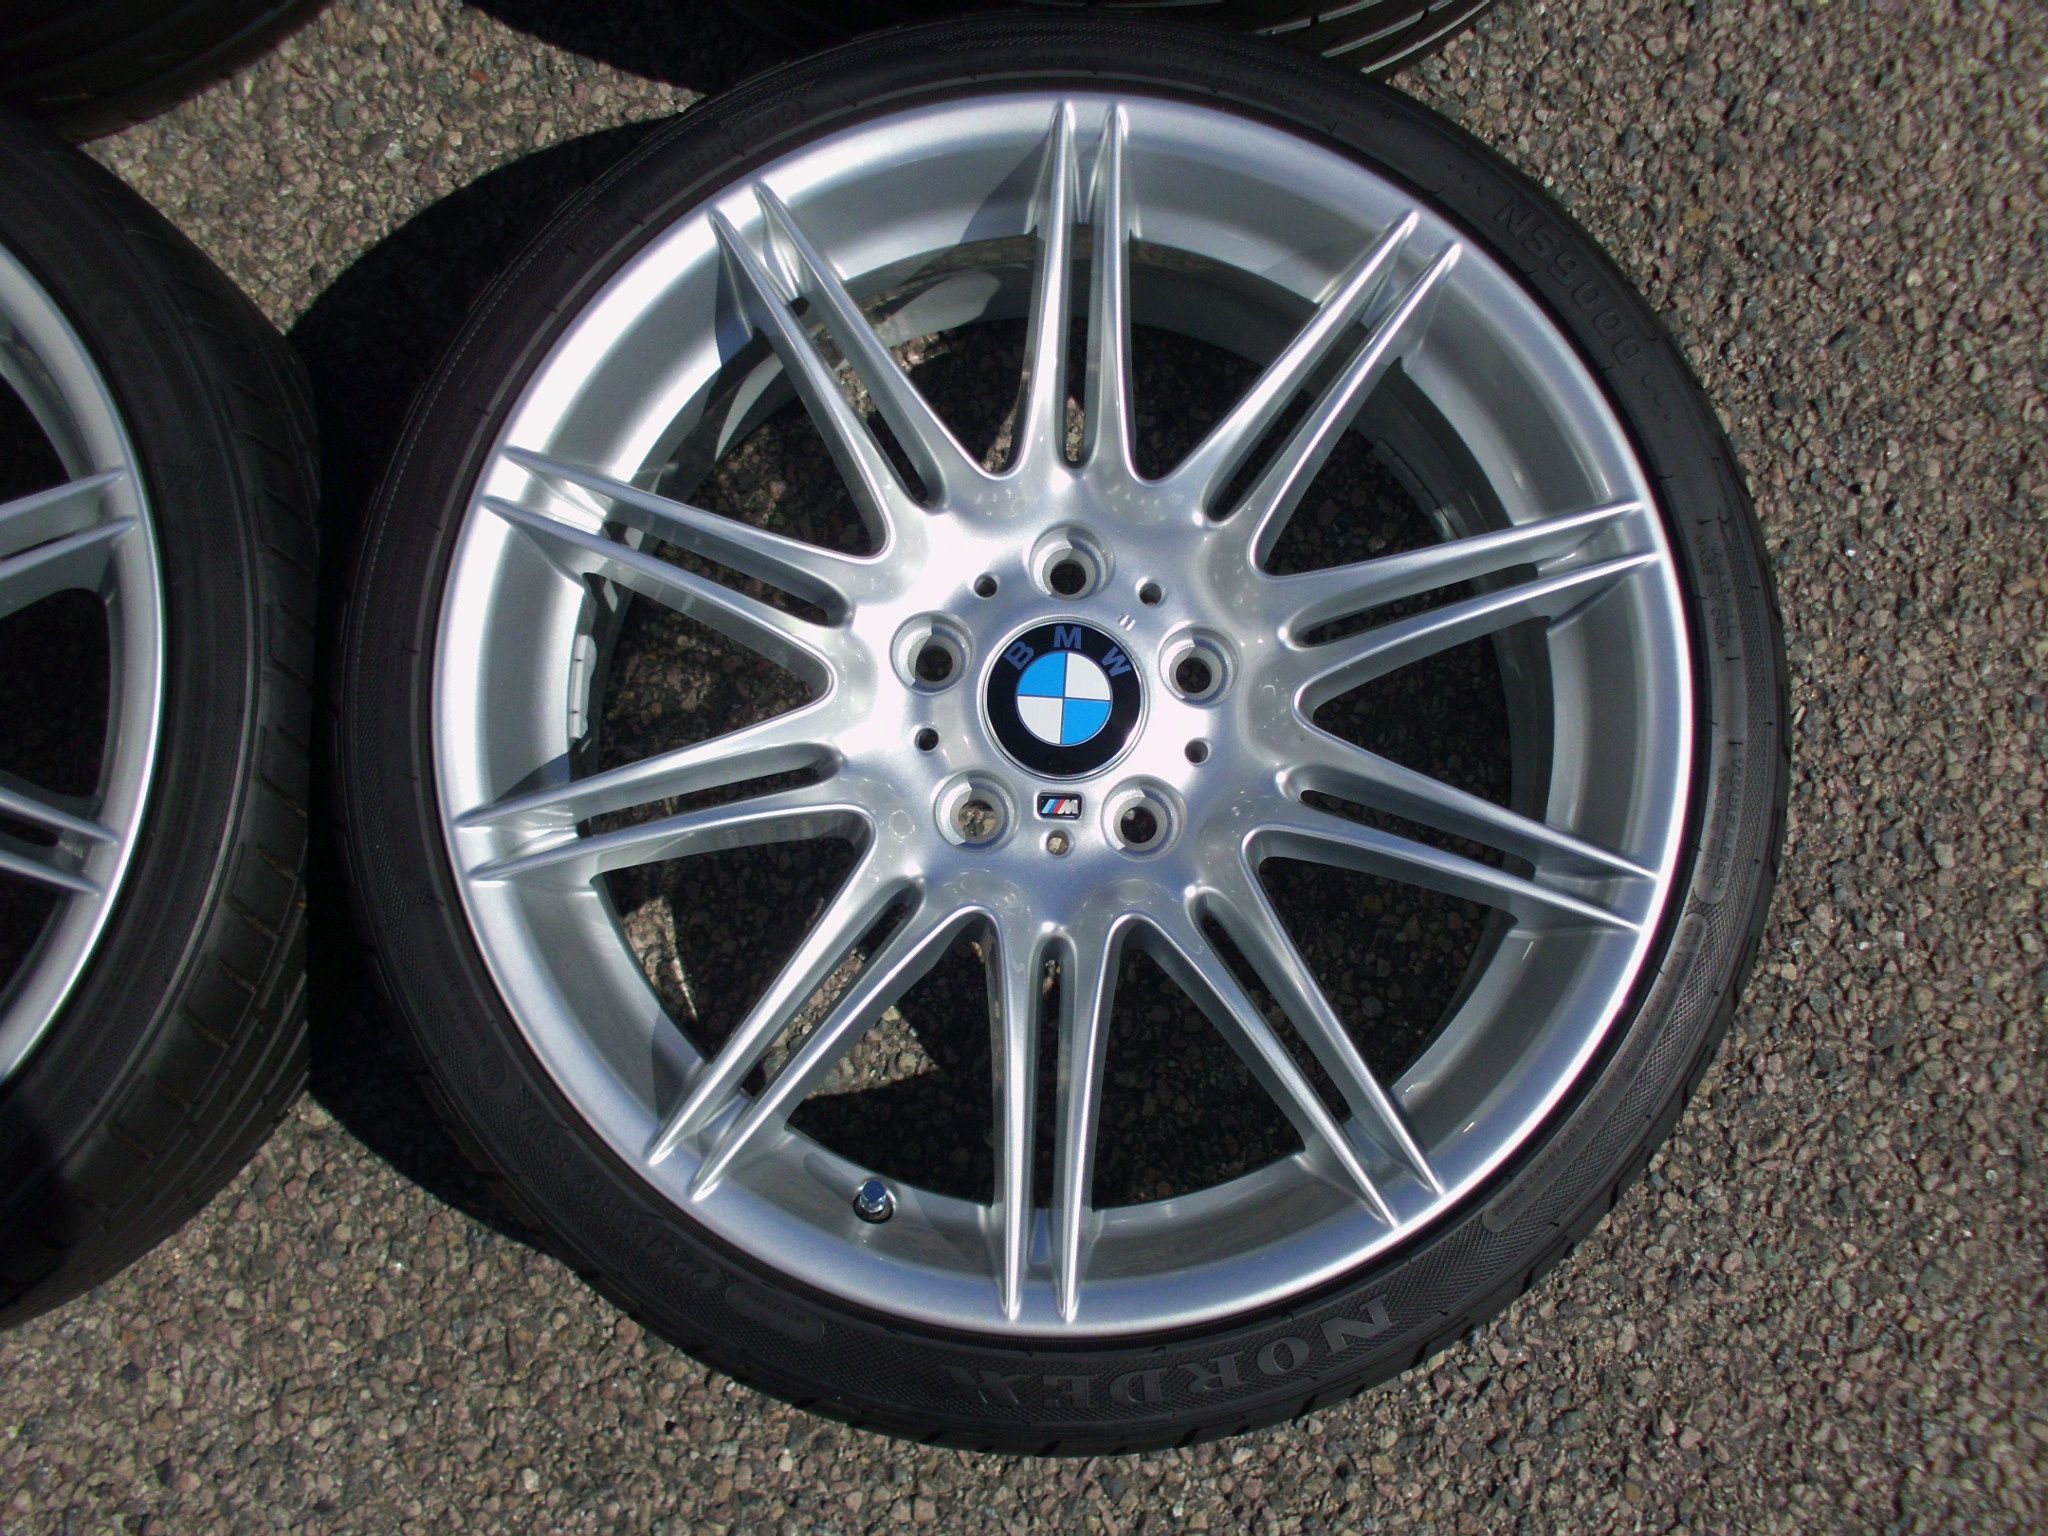 "USED 19"" GENUINE BMW STYLE 225M SPORT E92 ALLOY WHEELS, WIDE REAR, FULLY REFURBED INC GOOD NON RUNFLAT TYRES"